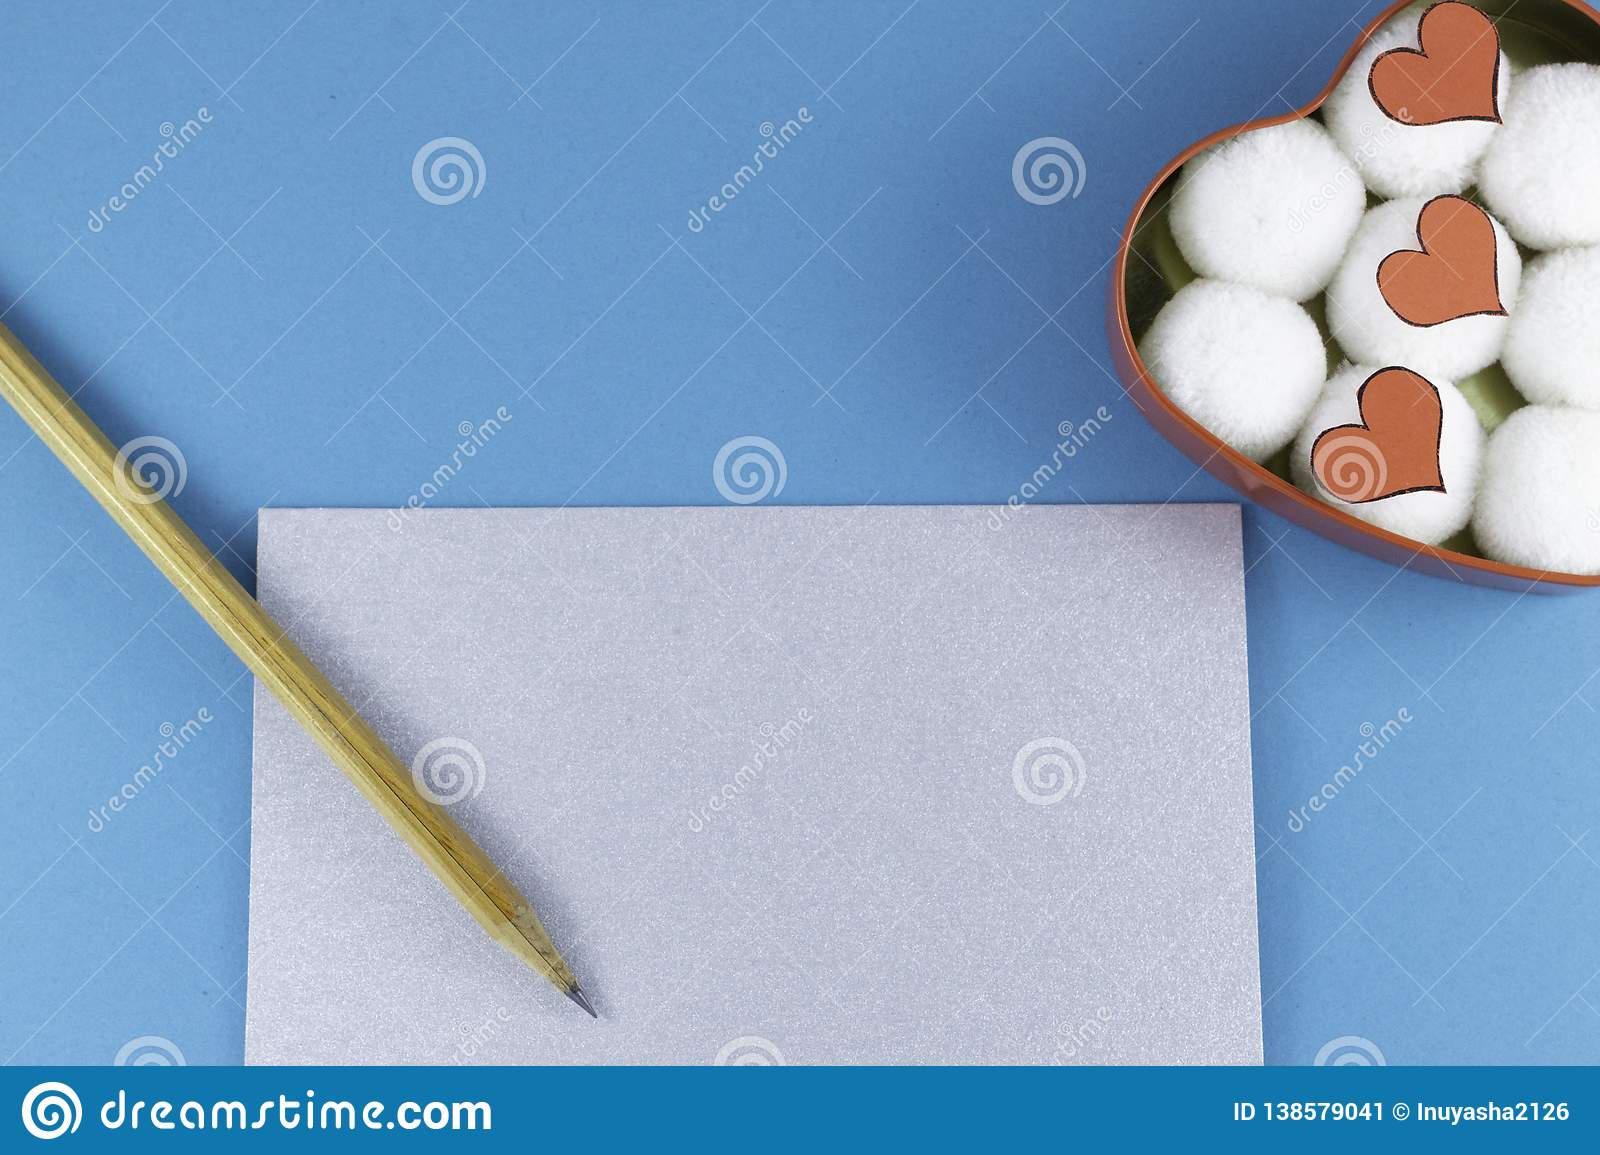 A blank silver letter with a wooden pencil and a heart-shaped box with cotton balls and hearts inside on a blue background